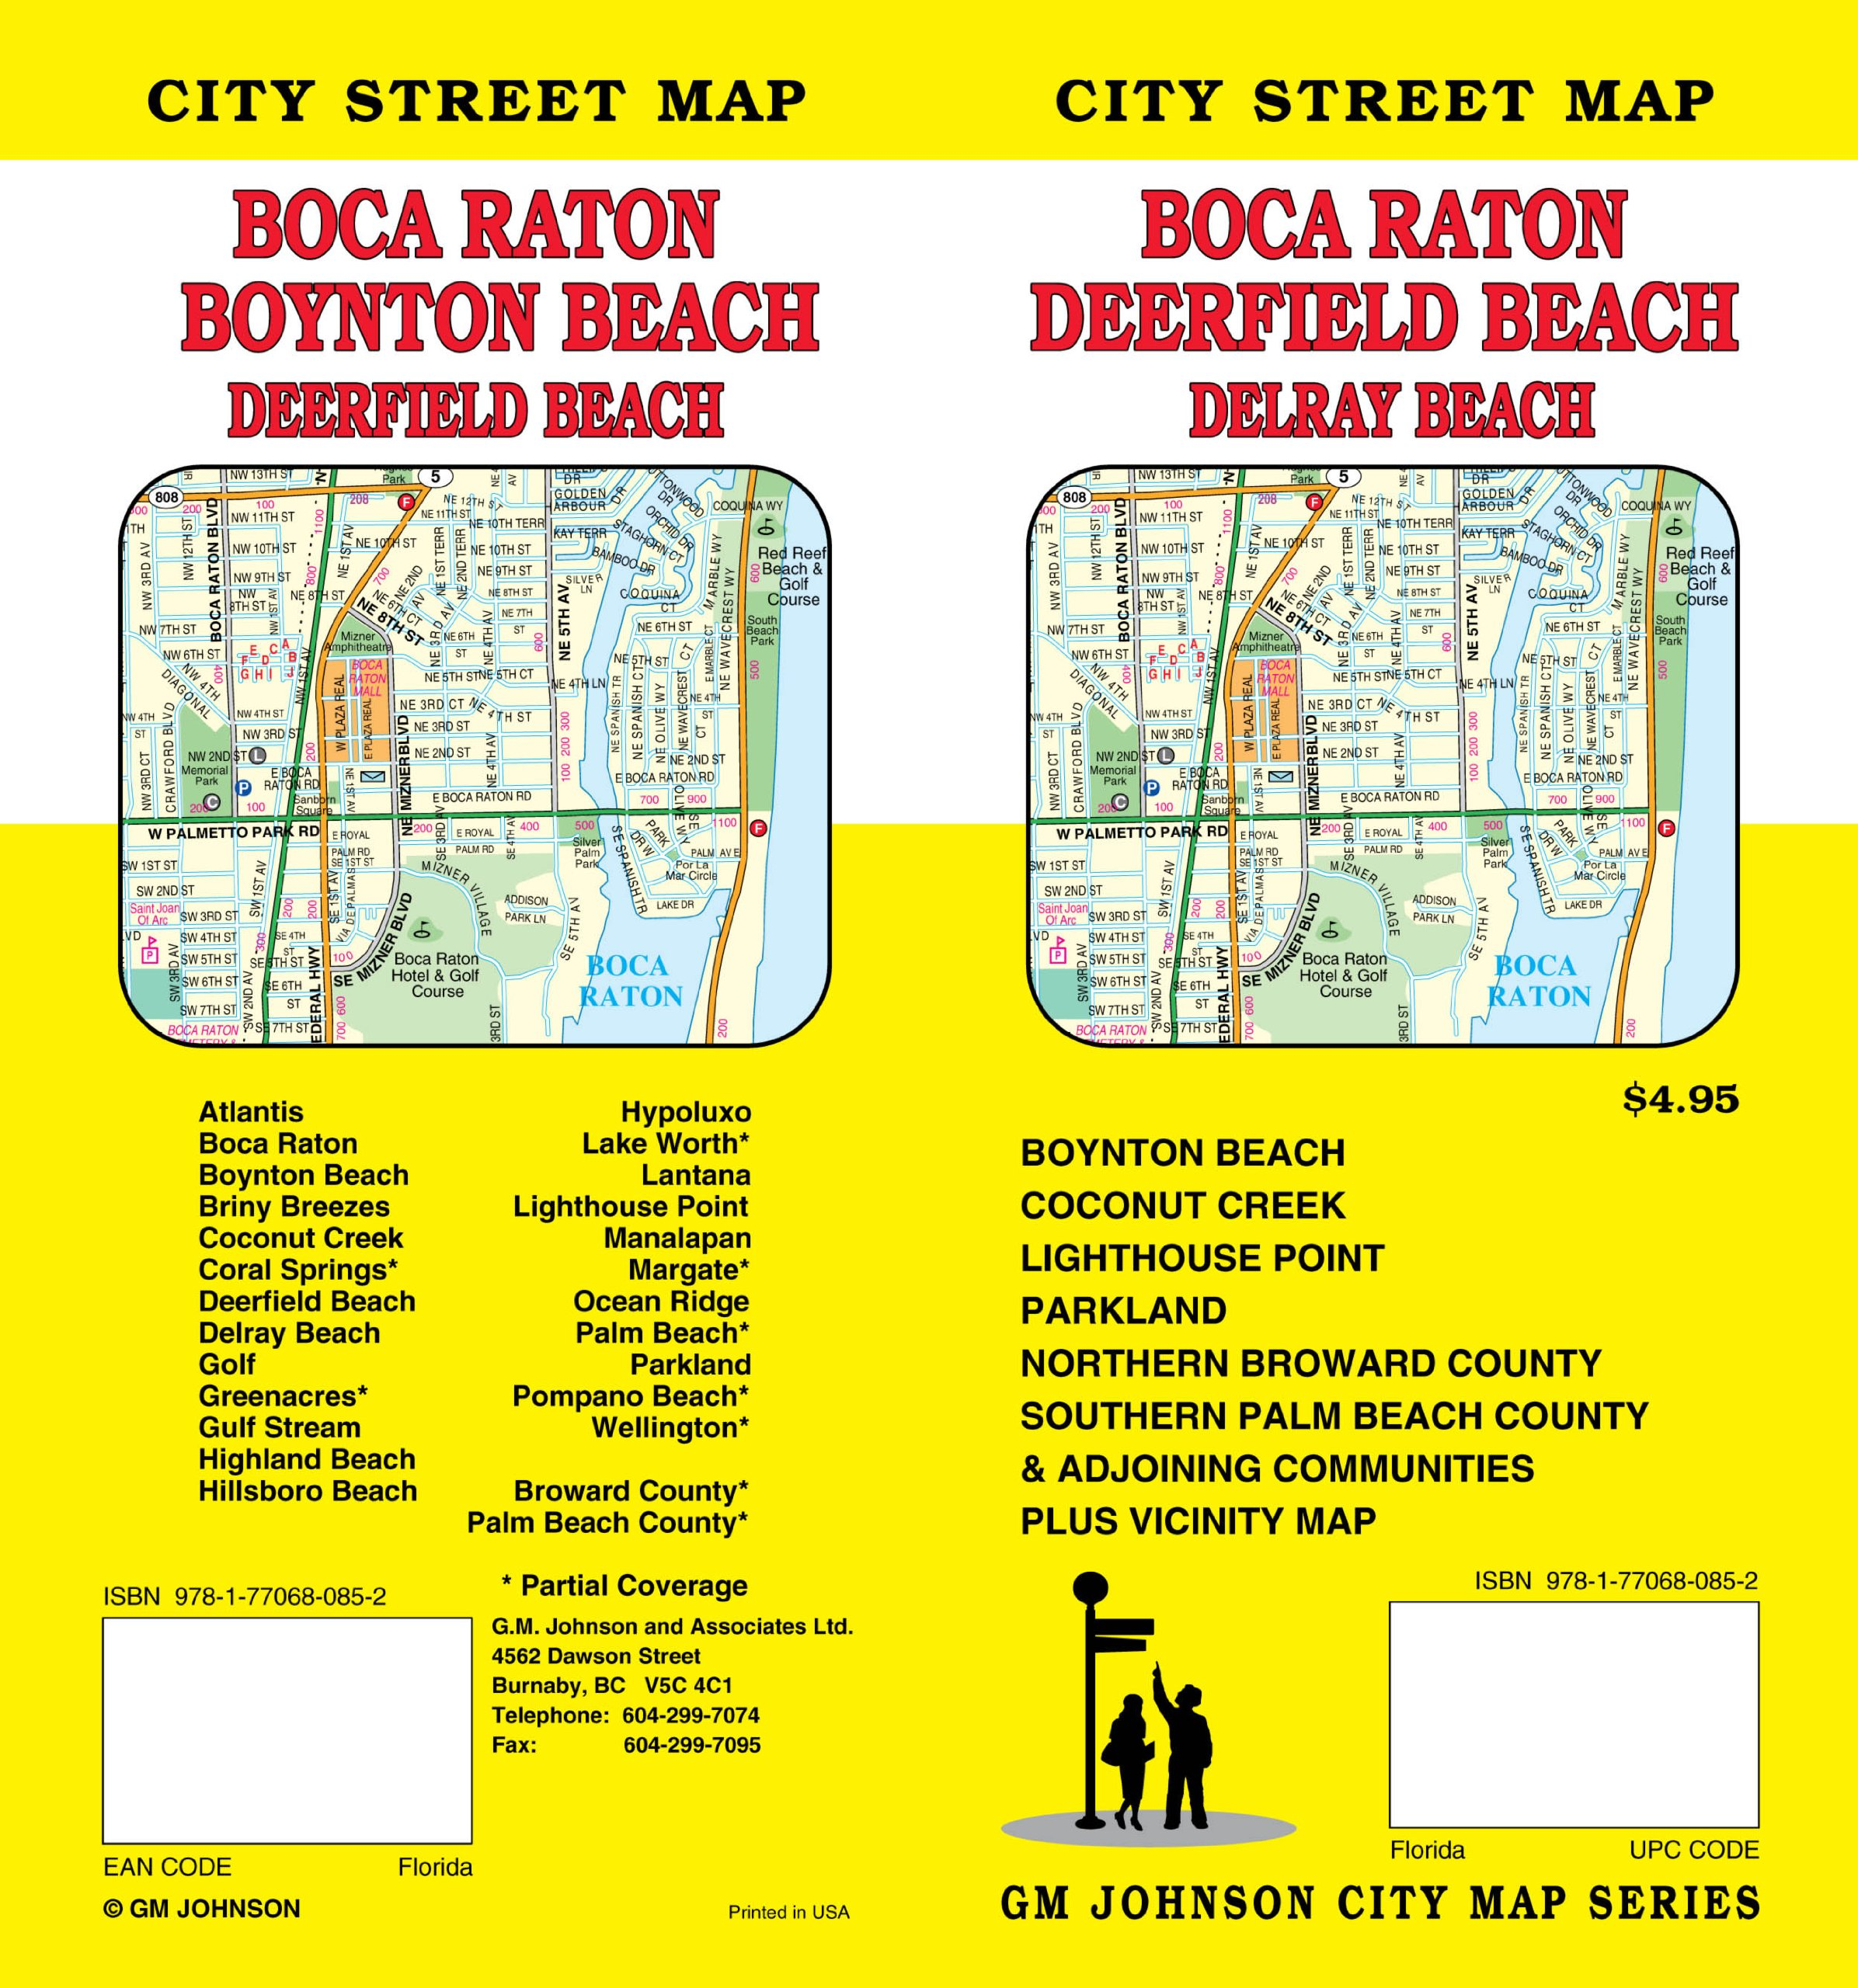 Map Of Florida Showing Boca Raton.Boca Raton Fl City Street Map Gm Johnson Associates Ltd